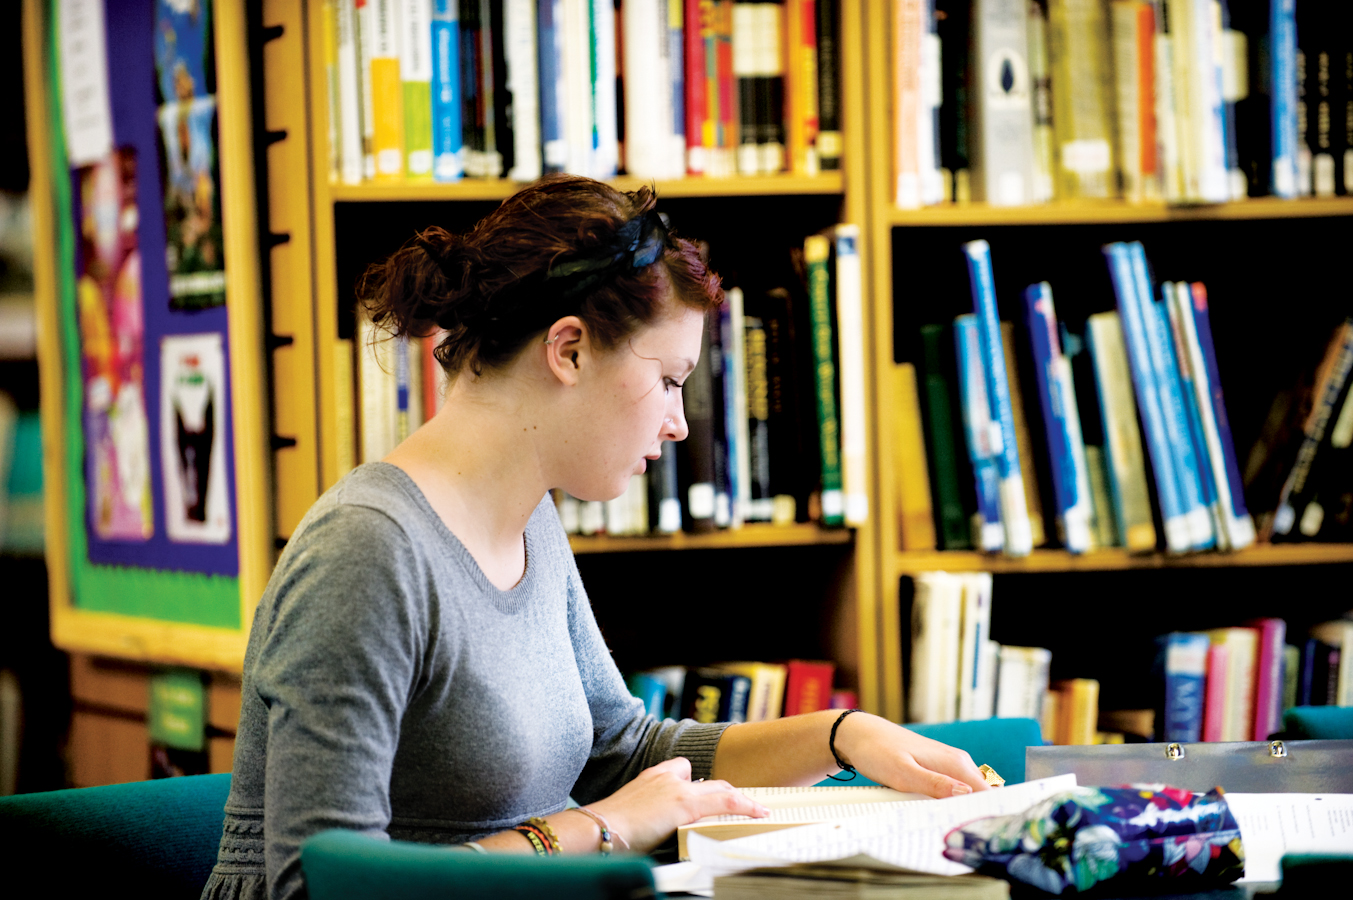 School girl studying in library